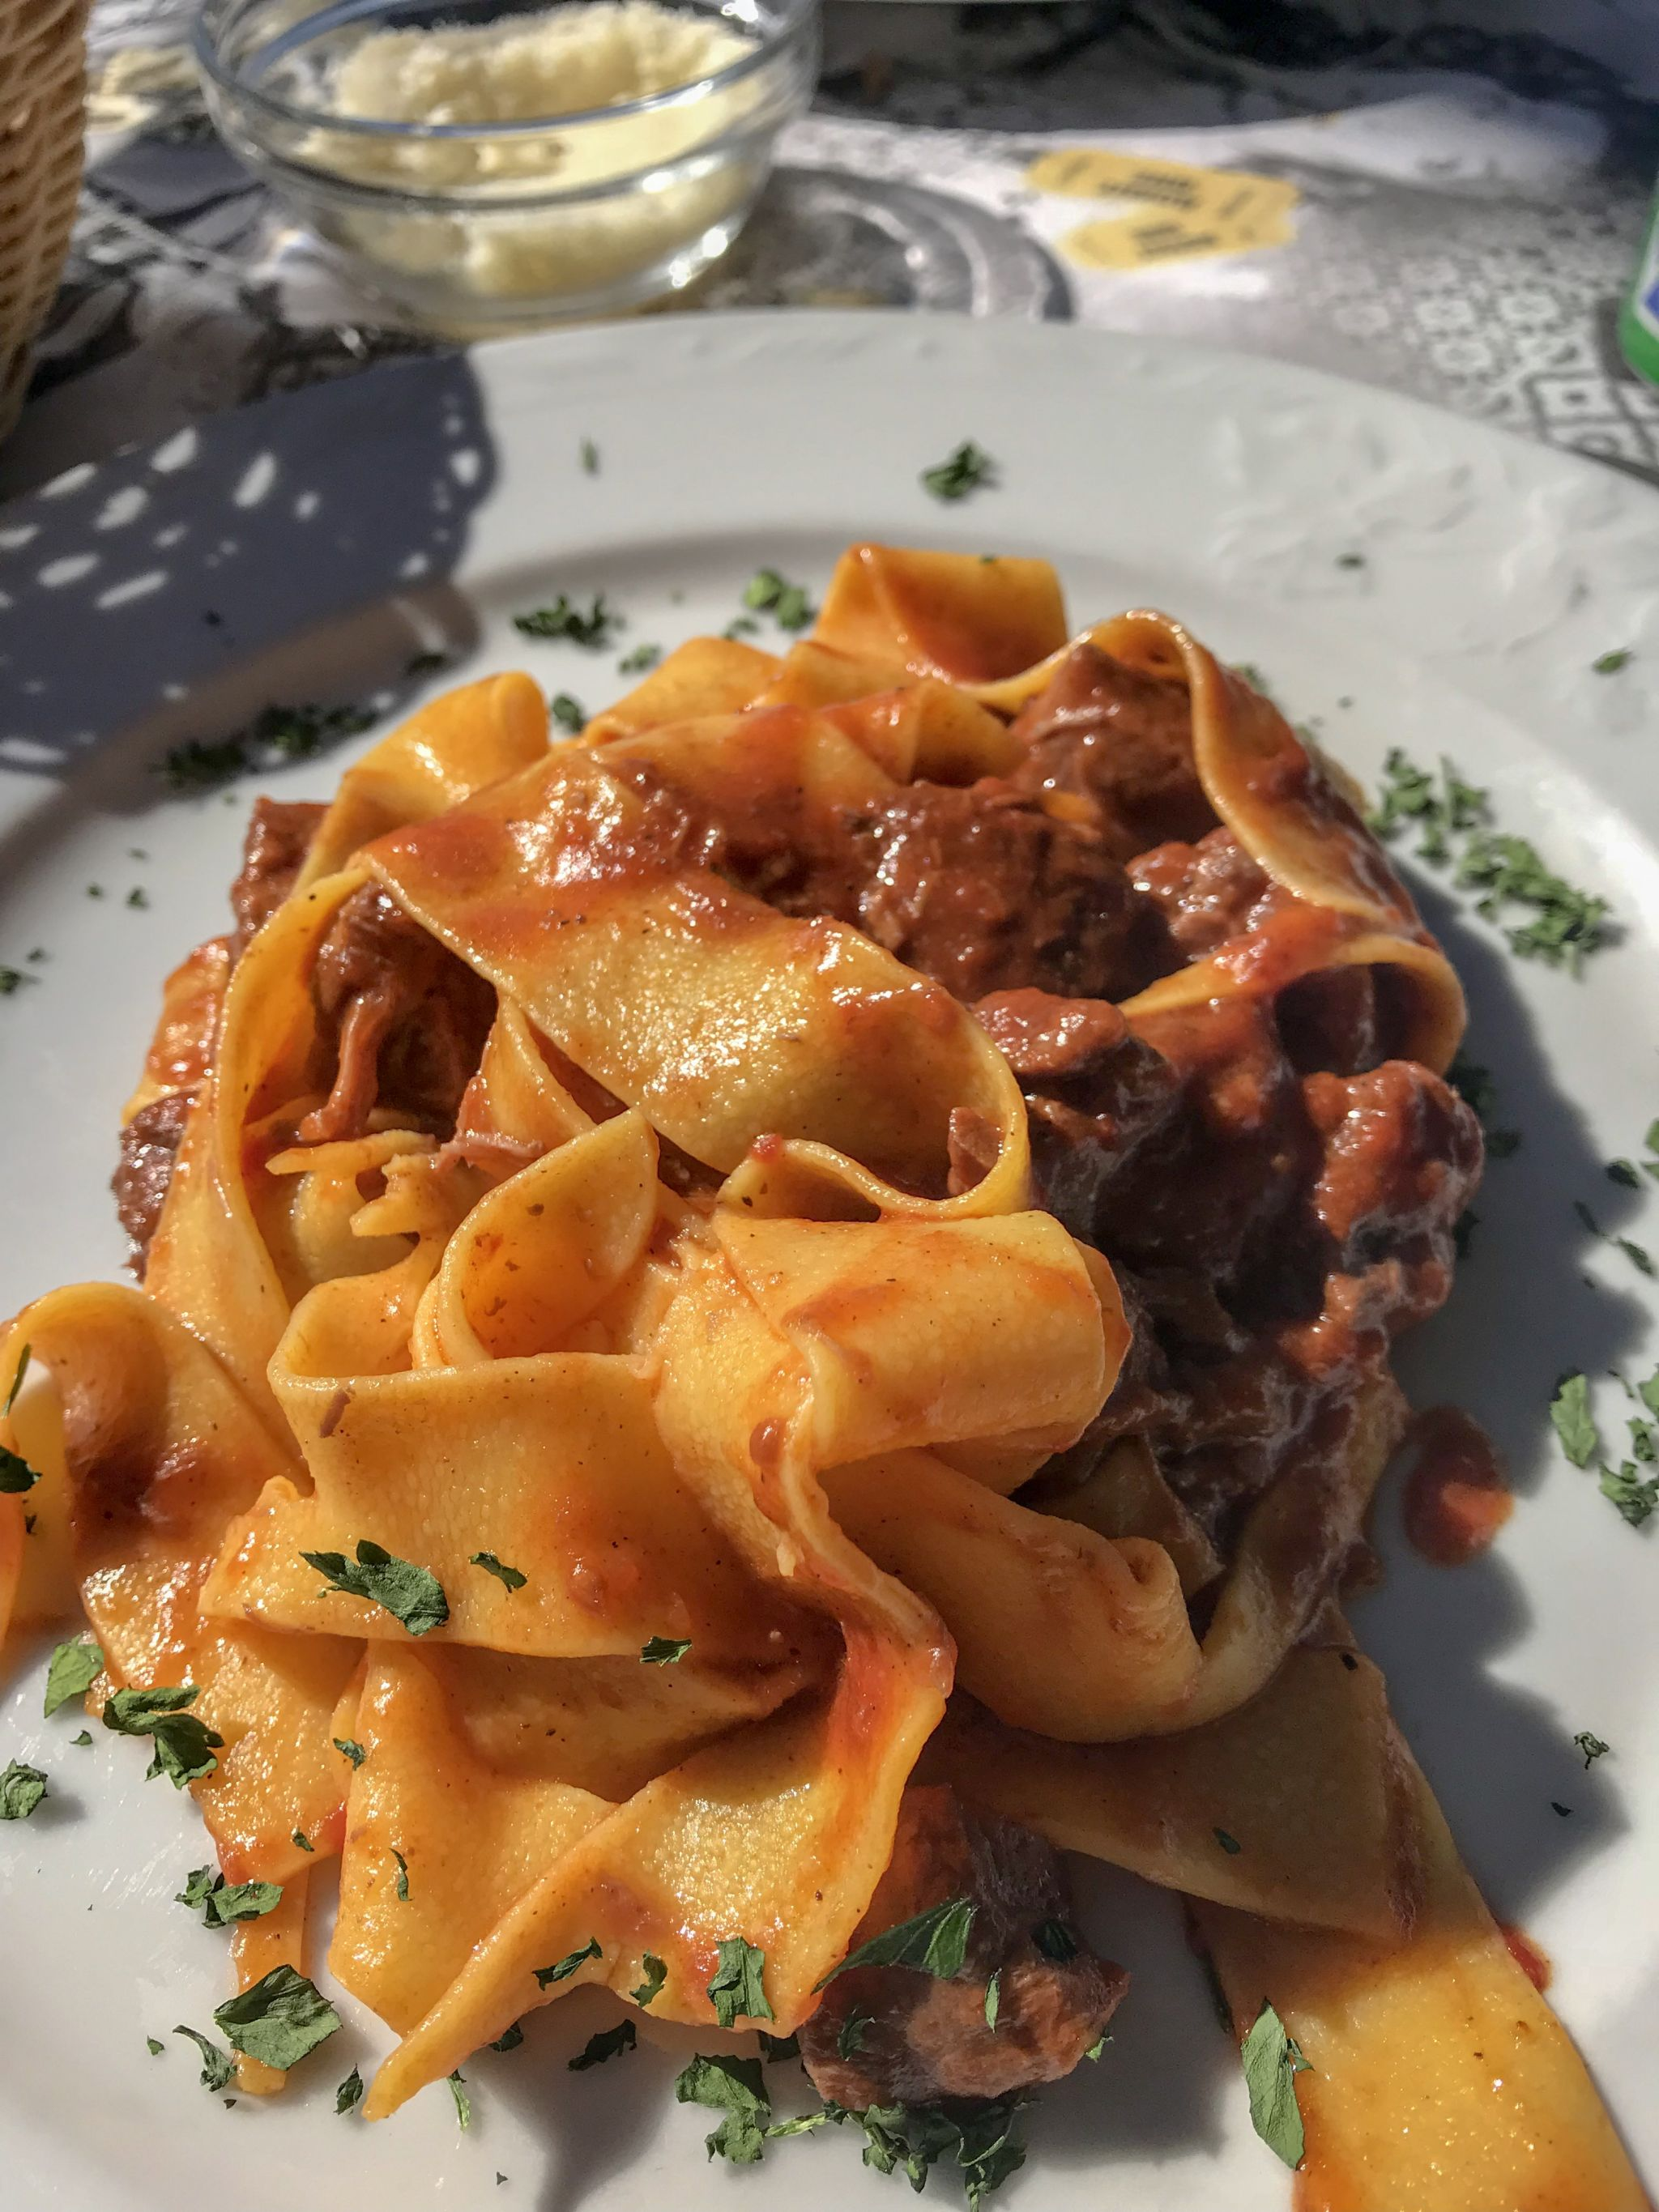 pappardelle pasta with wild boar sauce at Panoramic Restaurant